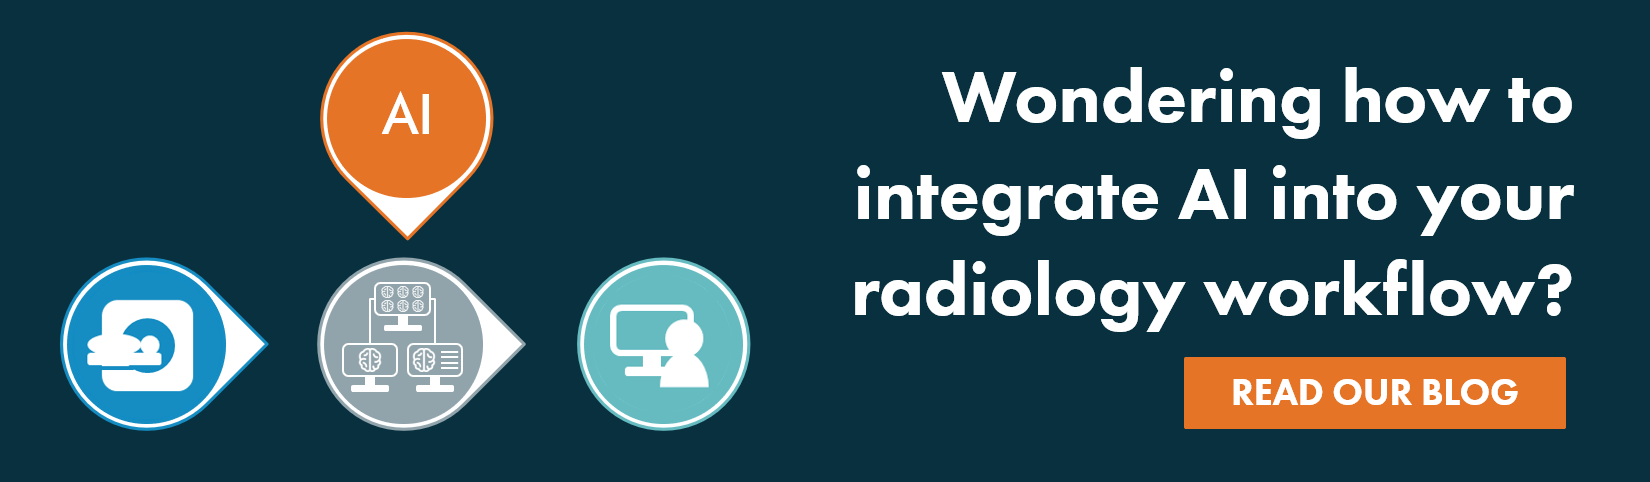 Integration-workflow-ai-radiology-guide